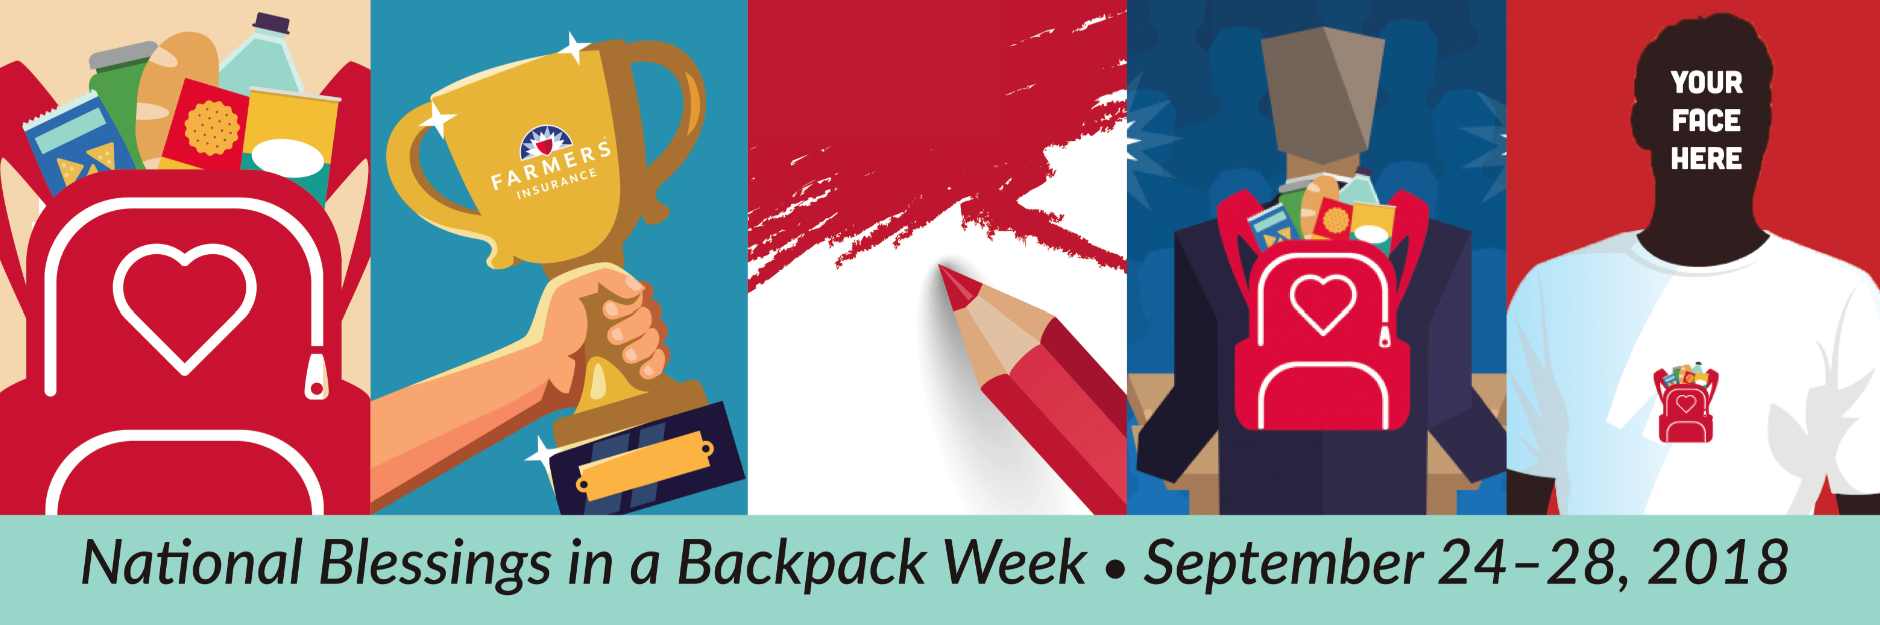 National Blessings in a Backpack Week Recap